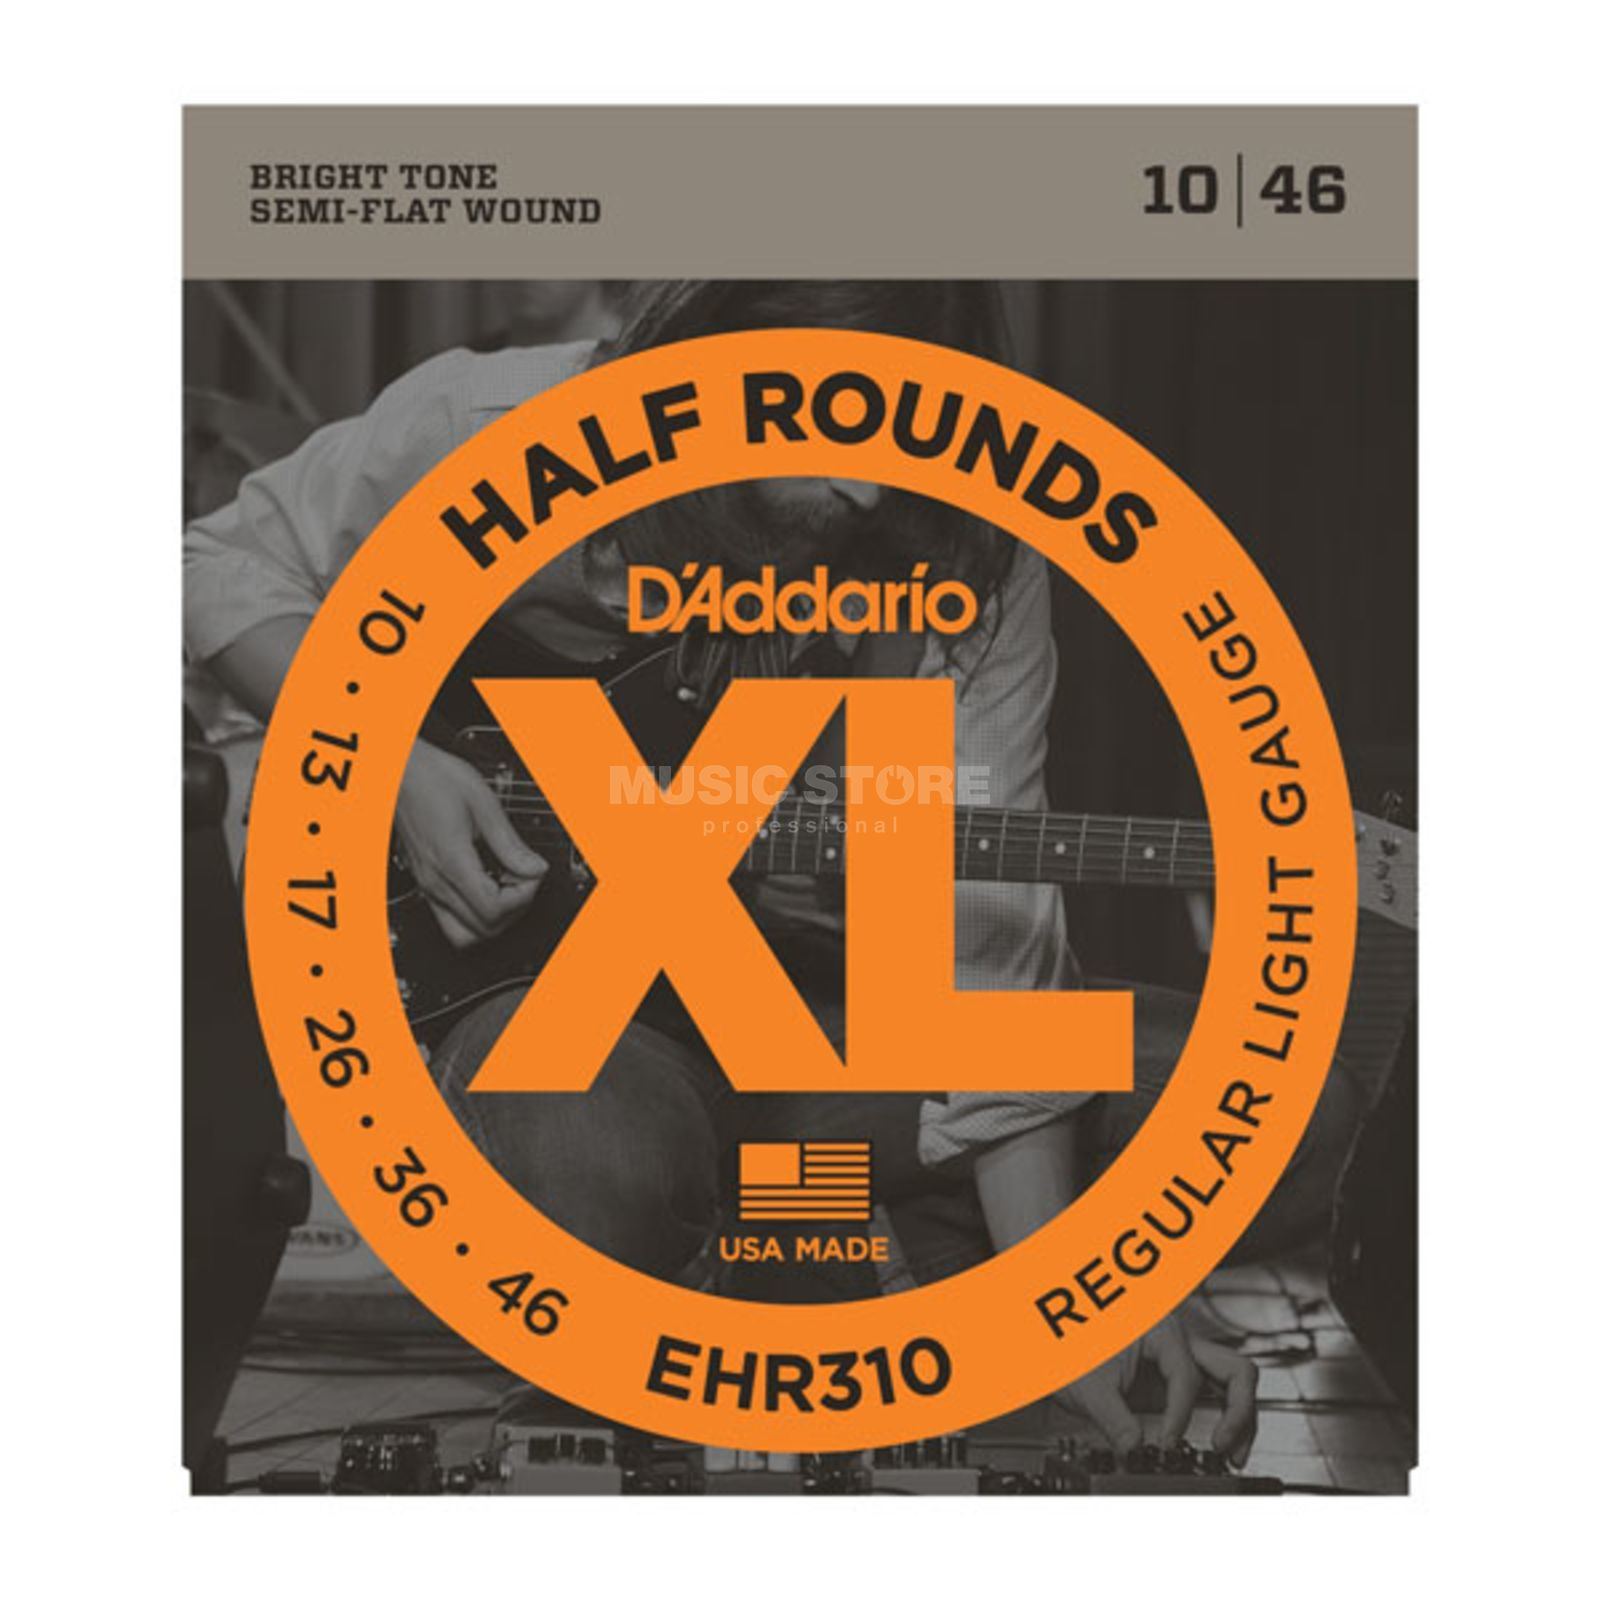 D'Addario EHR310 10-46 Half Rounds Stainless Steel Regular Light Produktbild